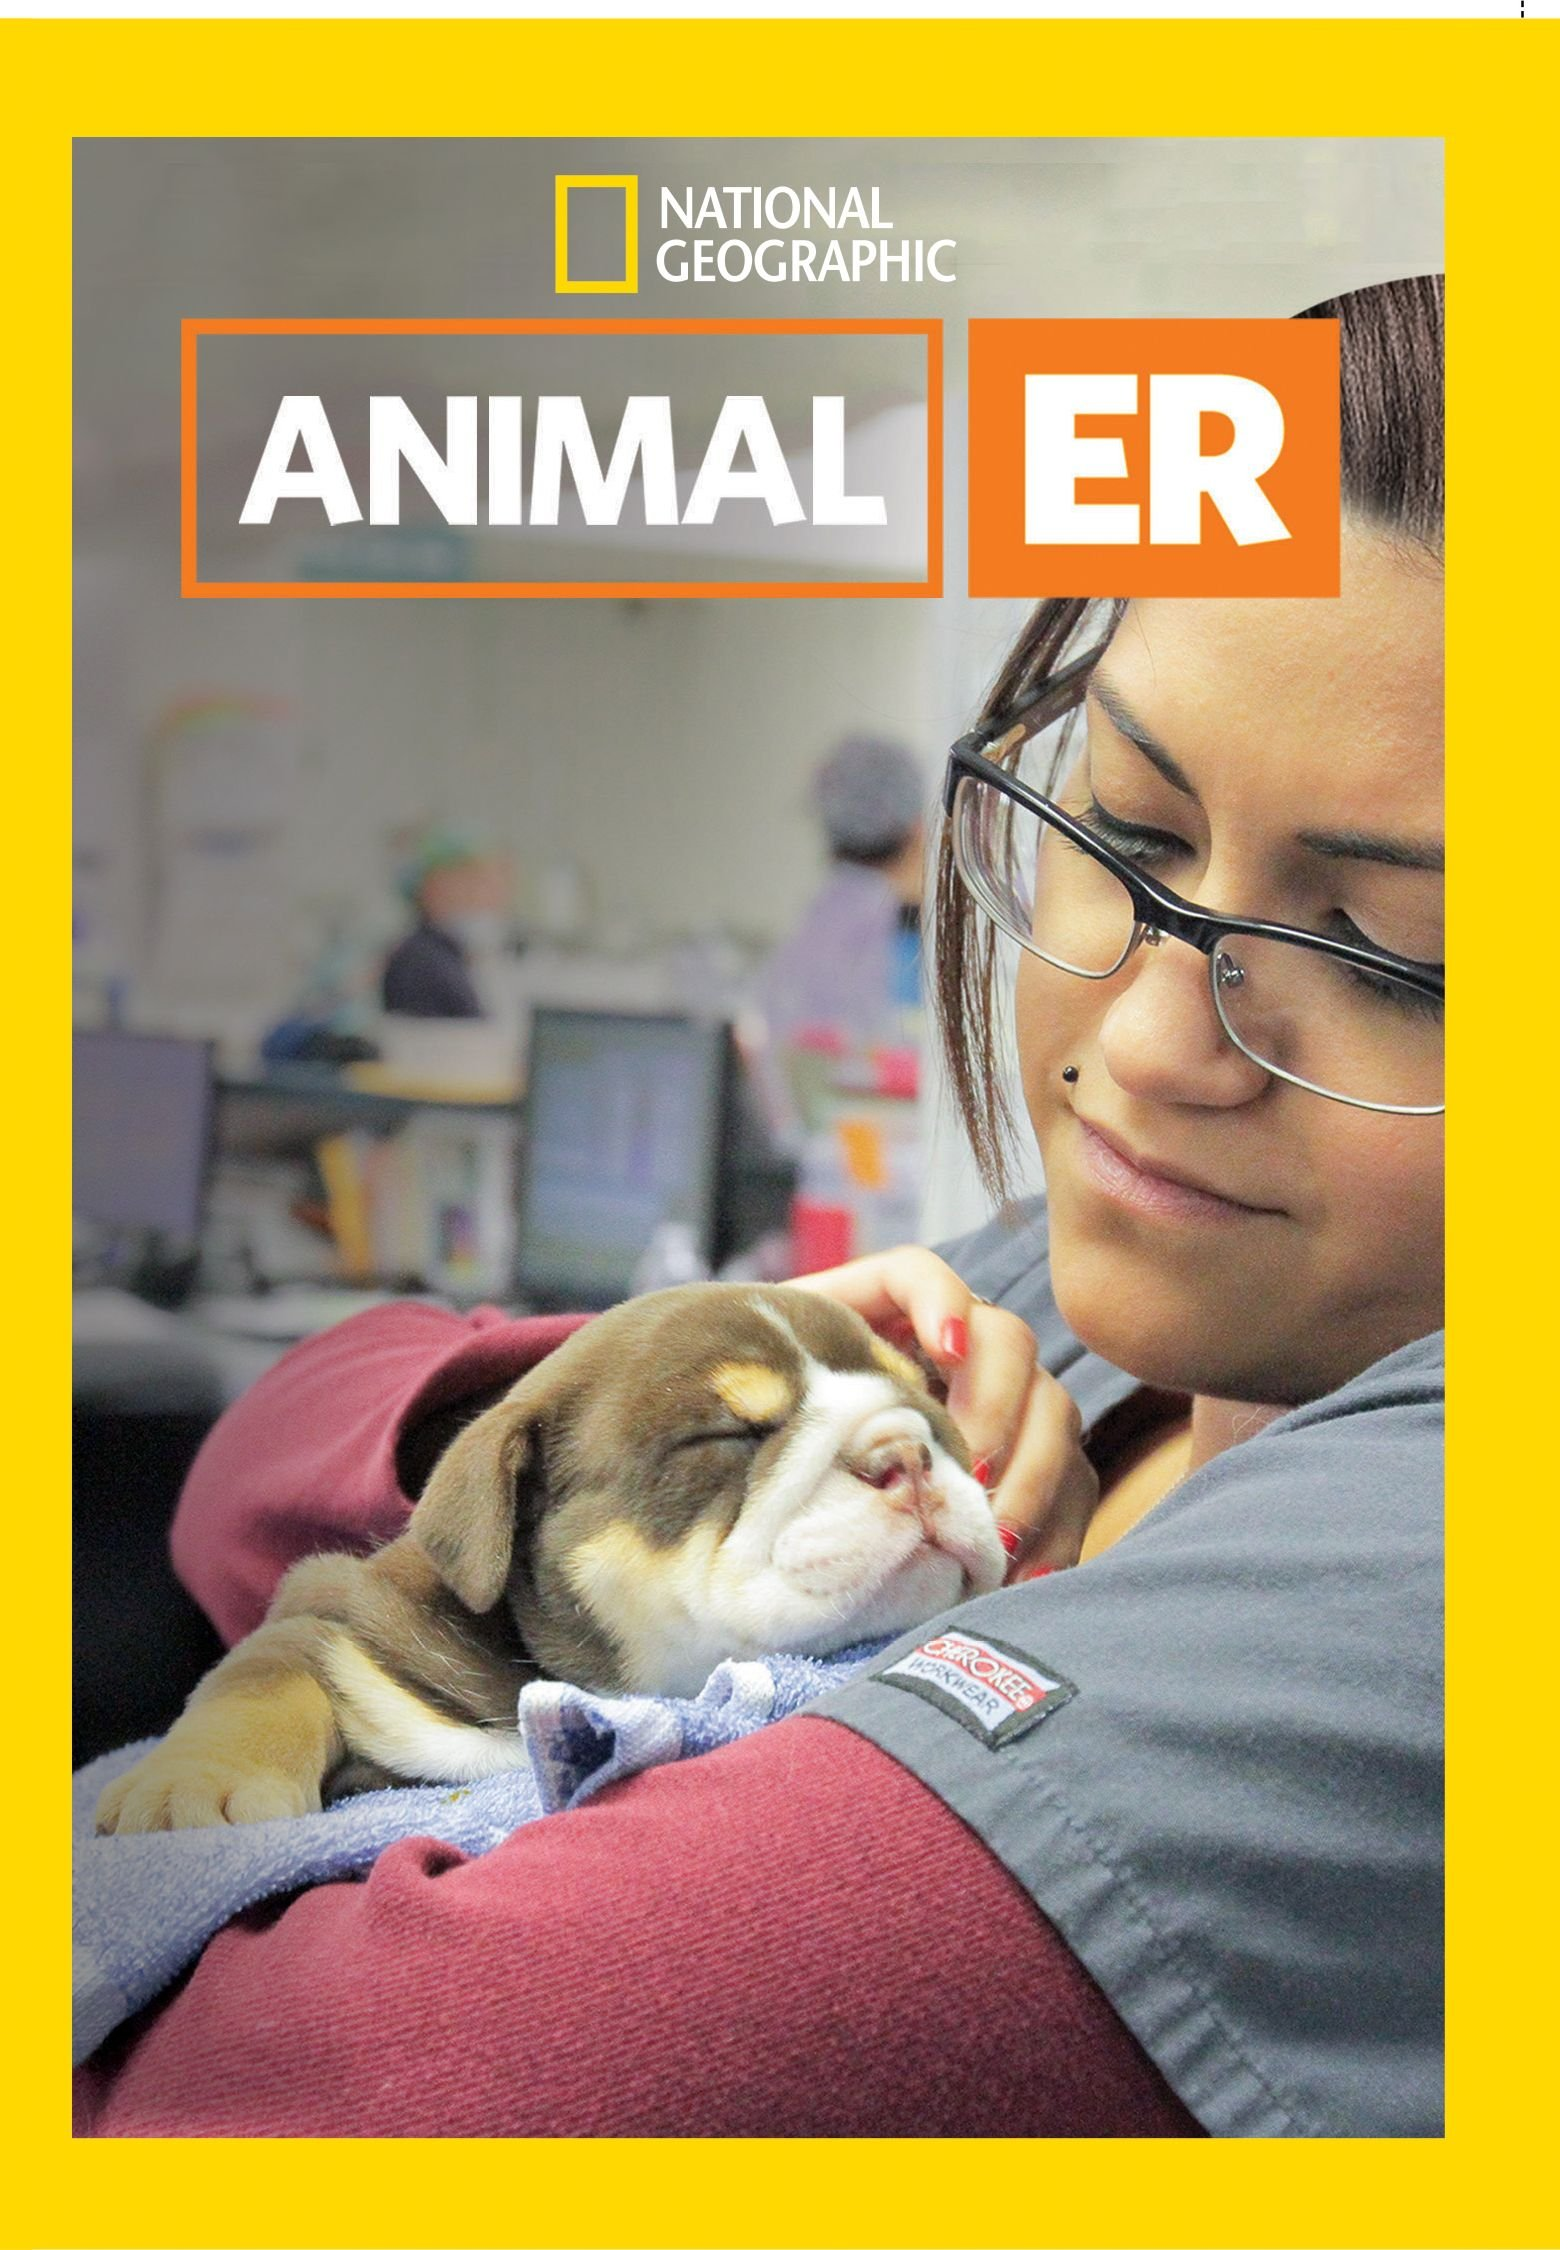 Animal ER by National Geographic